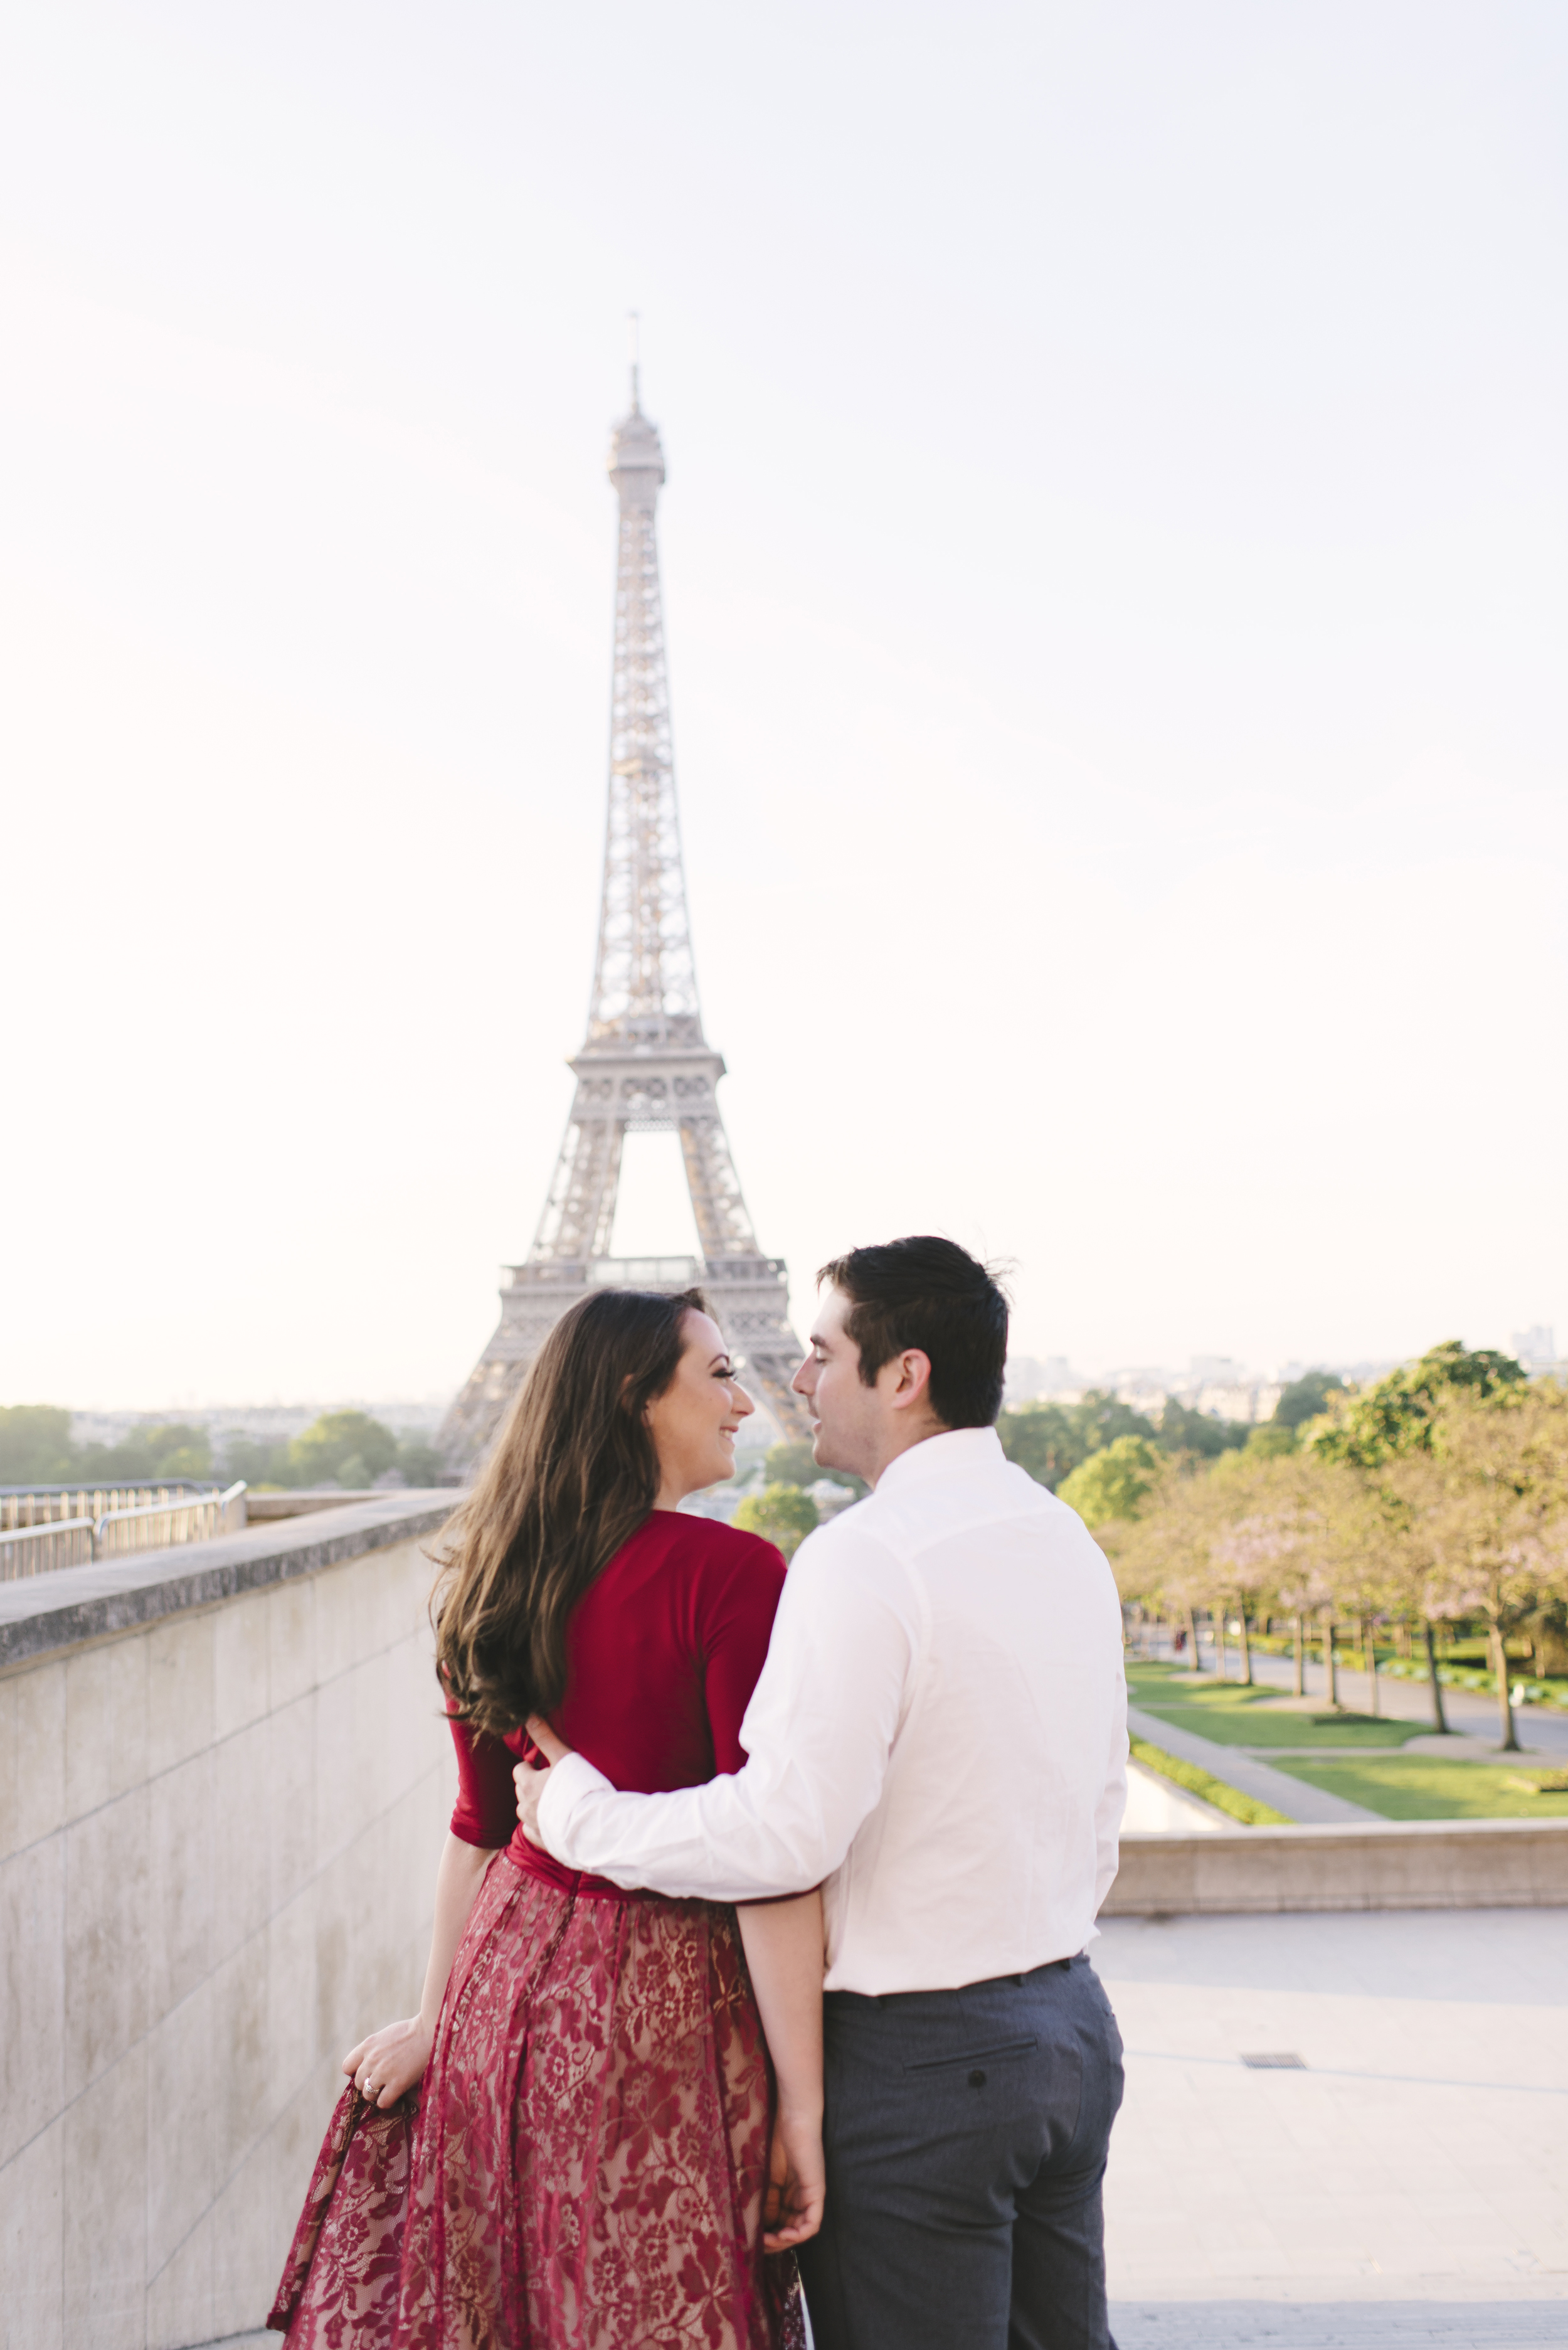 Couple-photoshoot-Anniversary-Paris-Eiffel-Tower-Trocadero023.jpg